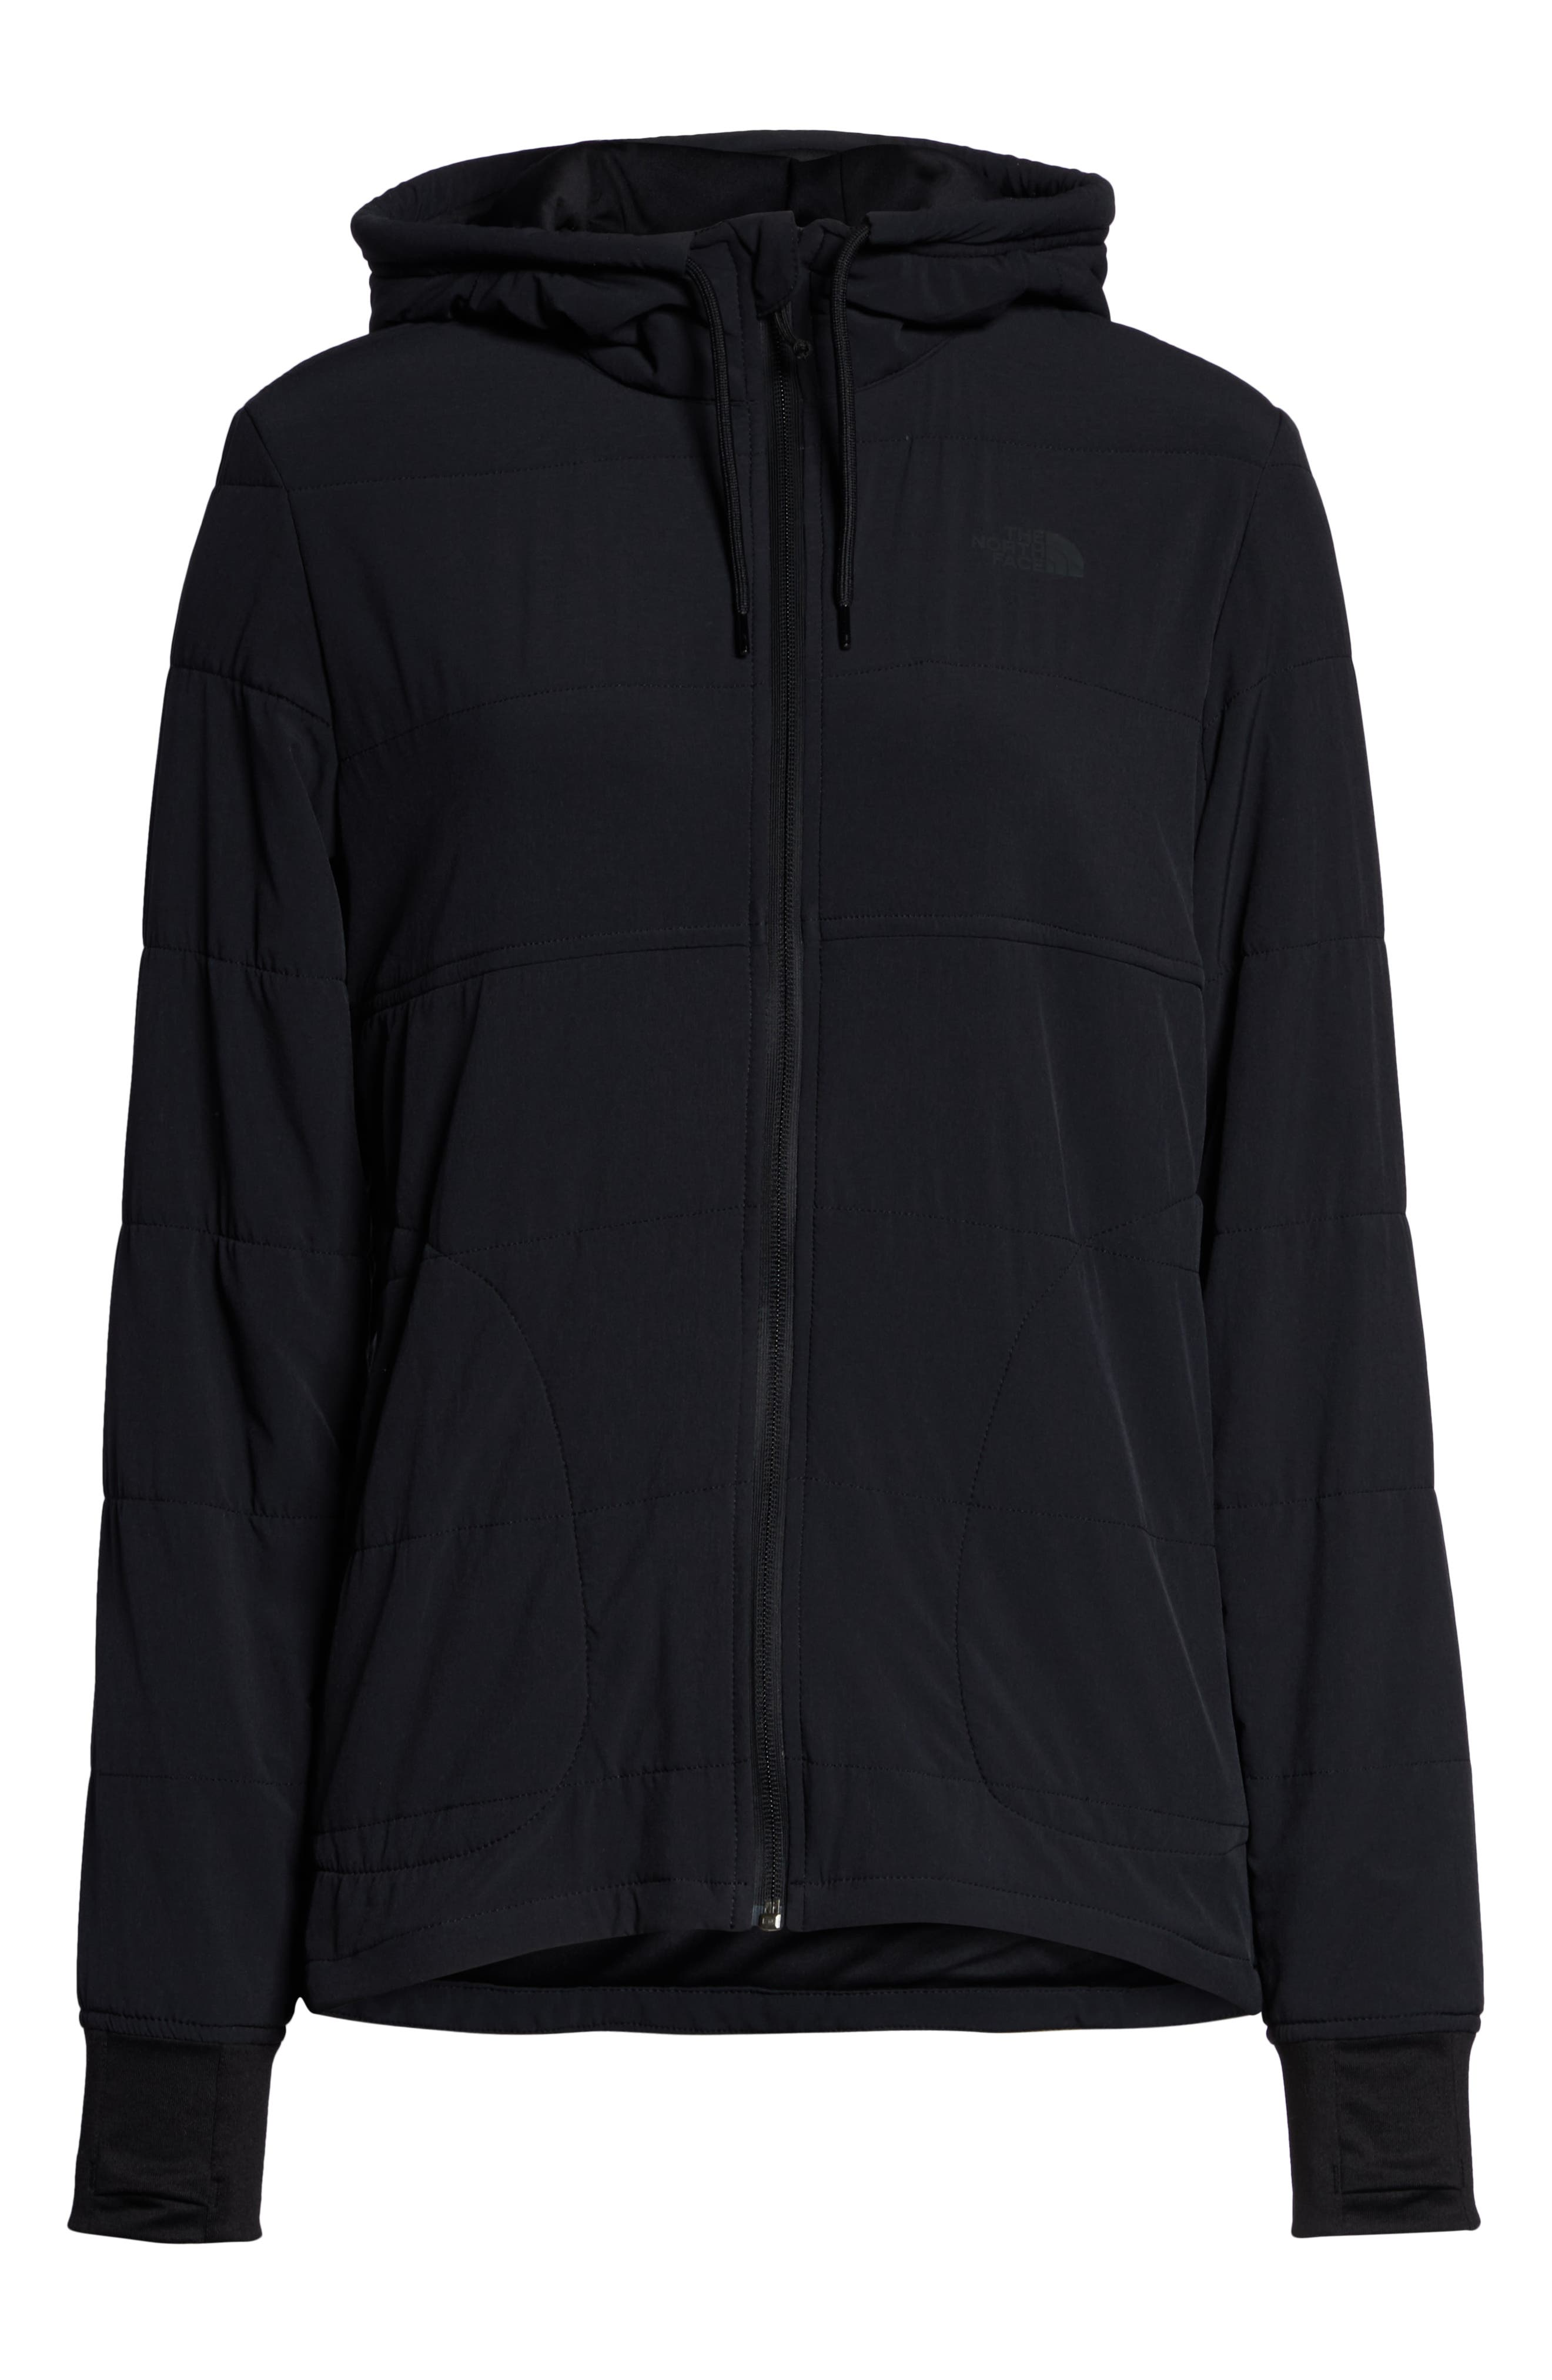 THE NORTH FACE,                             Mountain Insulated Zip Hooded Jacket,                             Alternate thumbnail 6, color,                             TNF BLACK